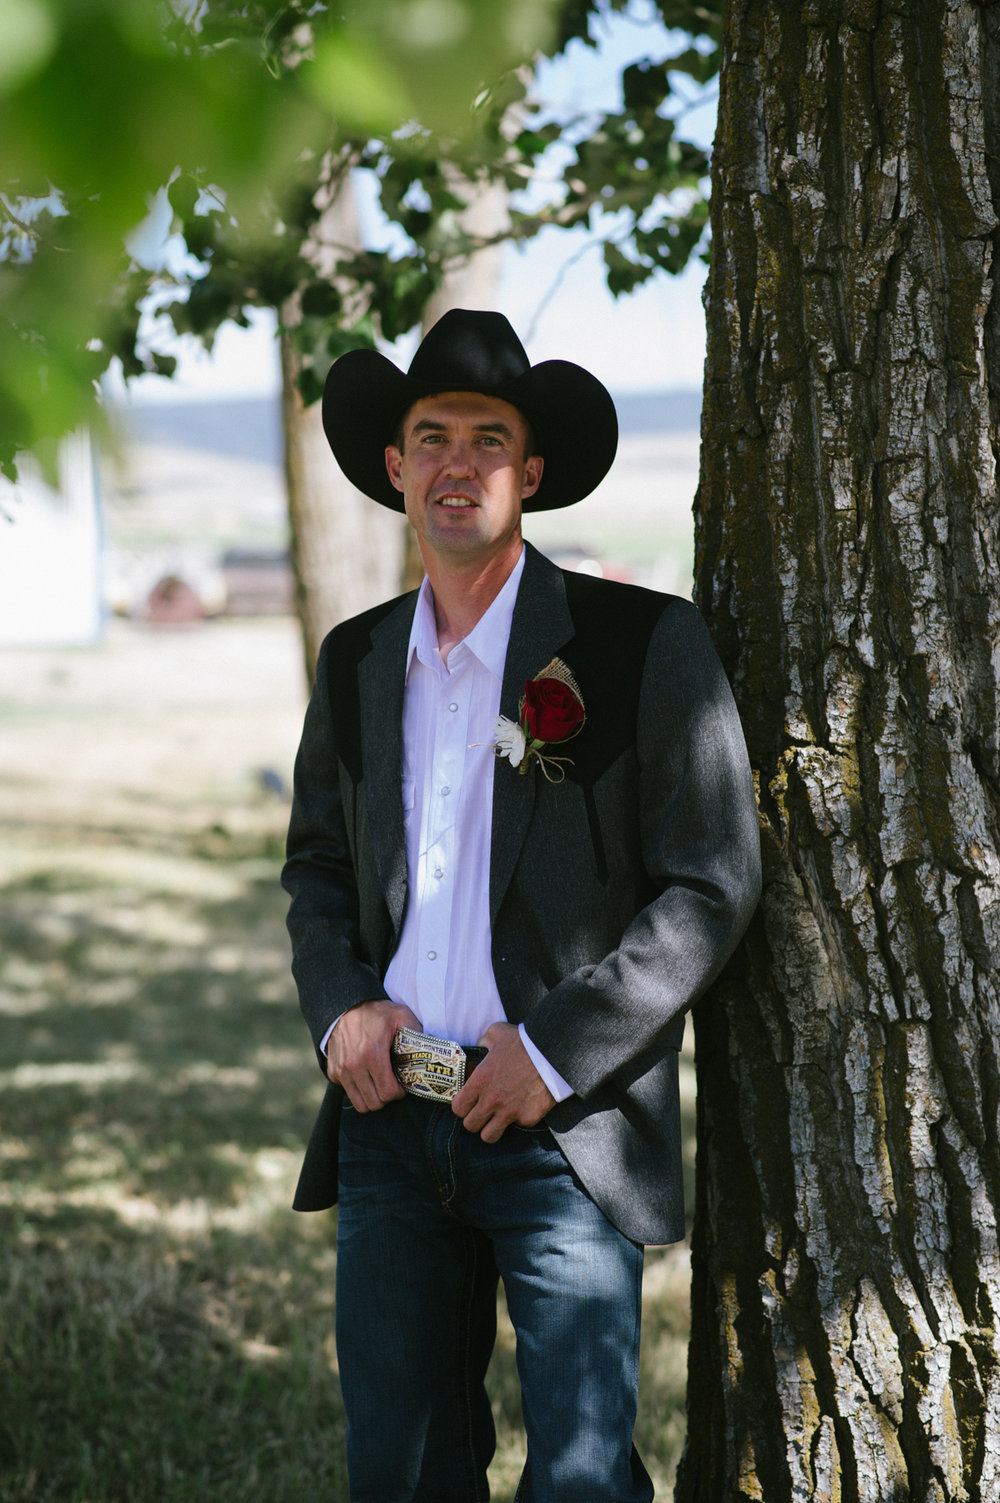 Erica Lind + Jeff Heim Wedding_Rustic Wedding_Montana Wedding_Kelsey Lane Photography-3907-2.jpg